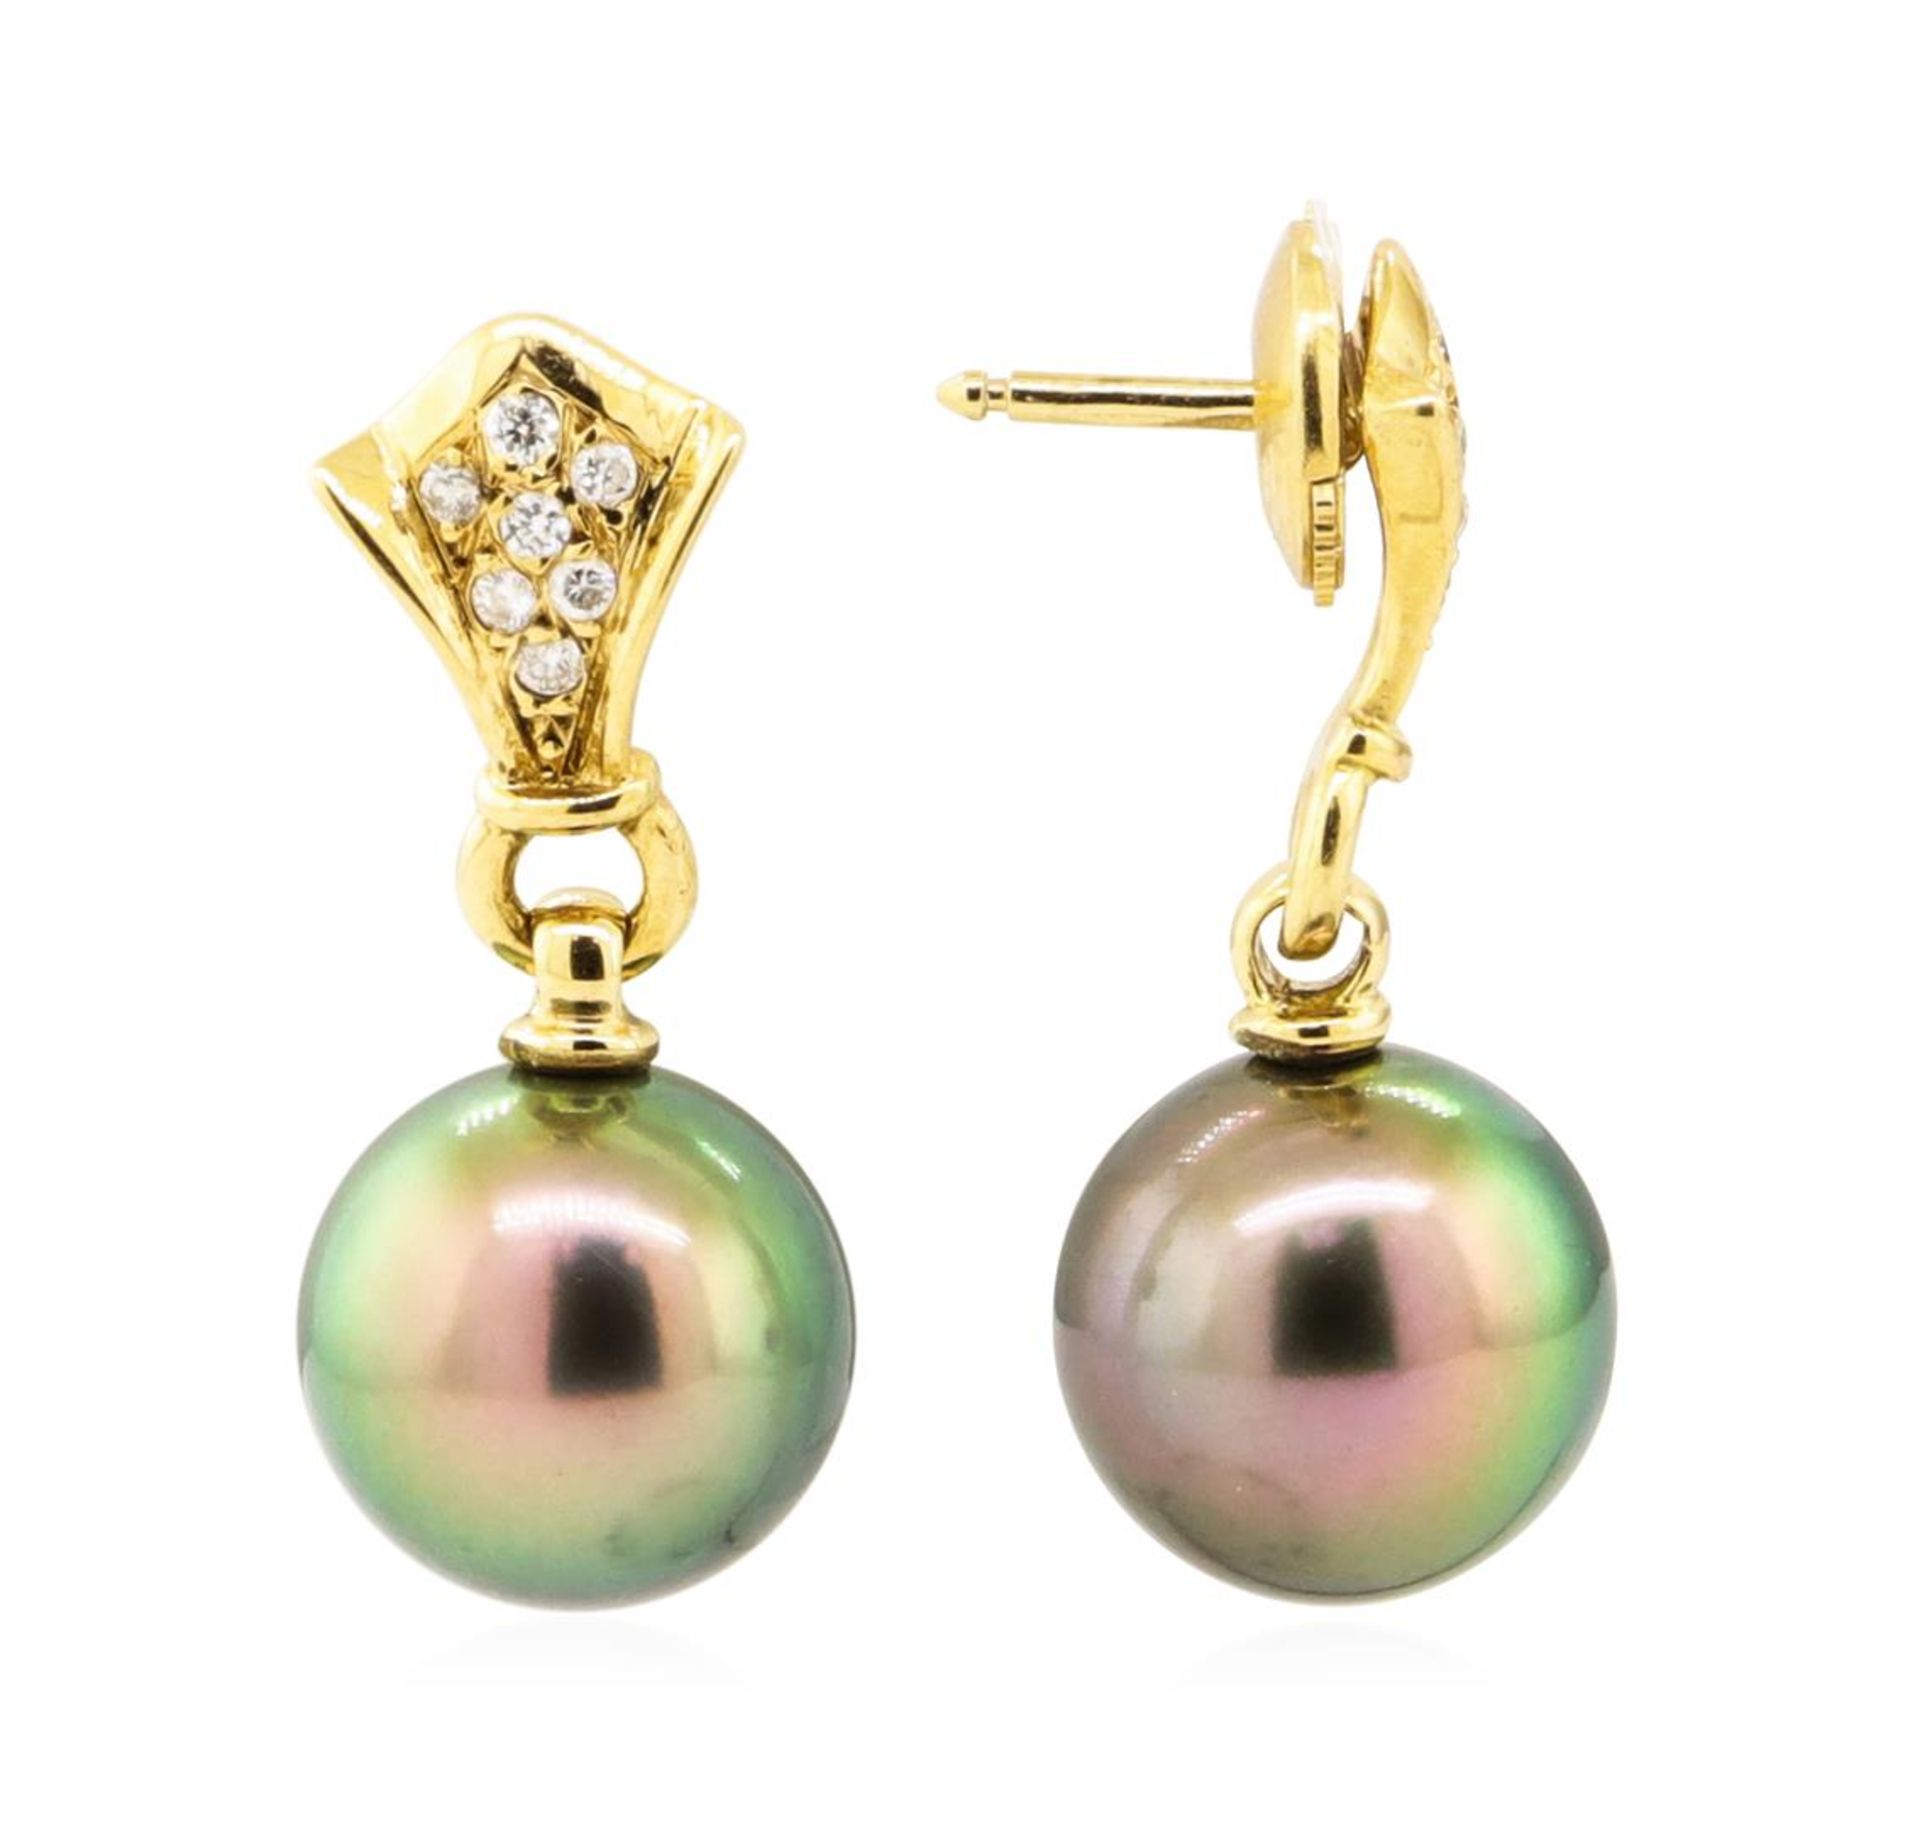 0.15 ctw Diamond and Pearl Earrings - 18KT Yellow Gold - Image 2 of 3